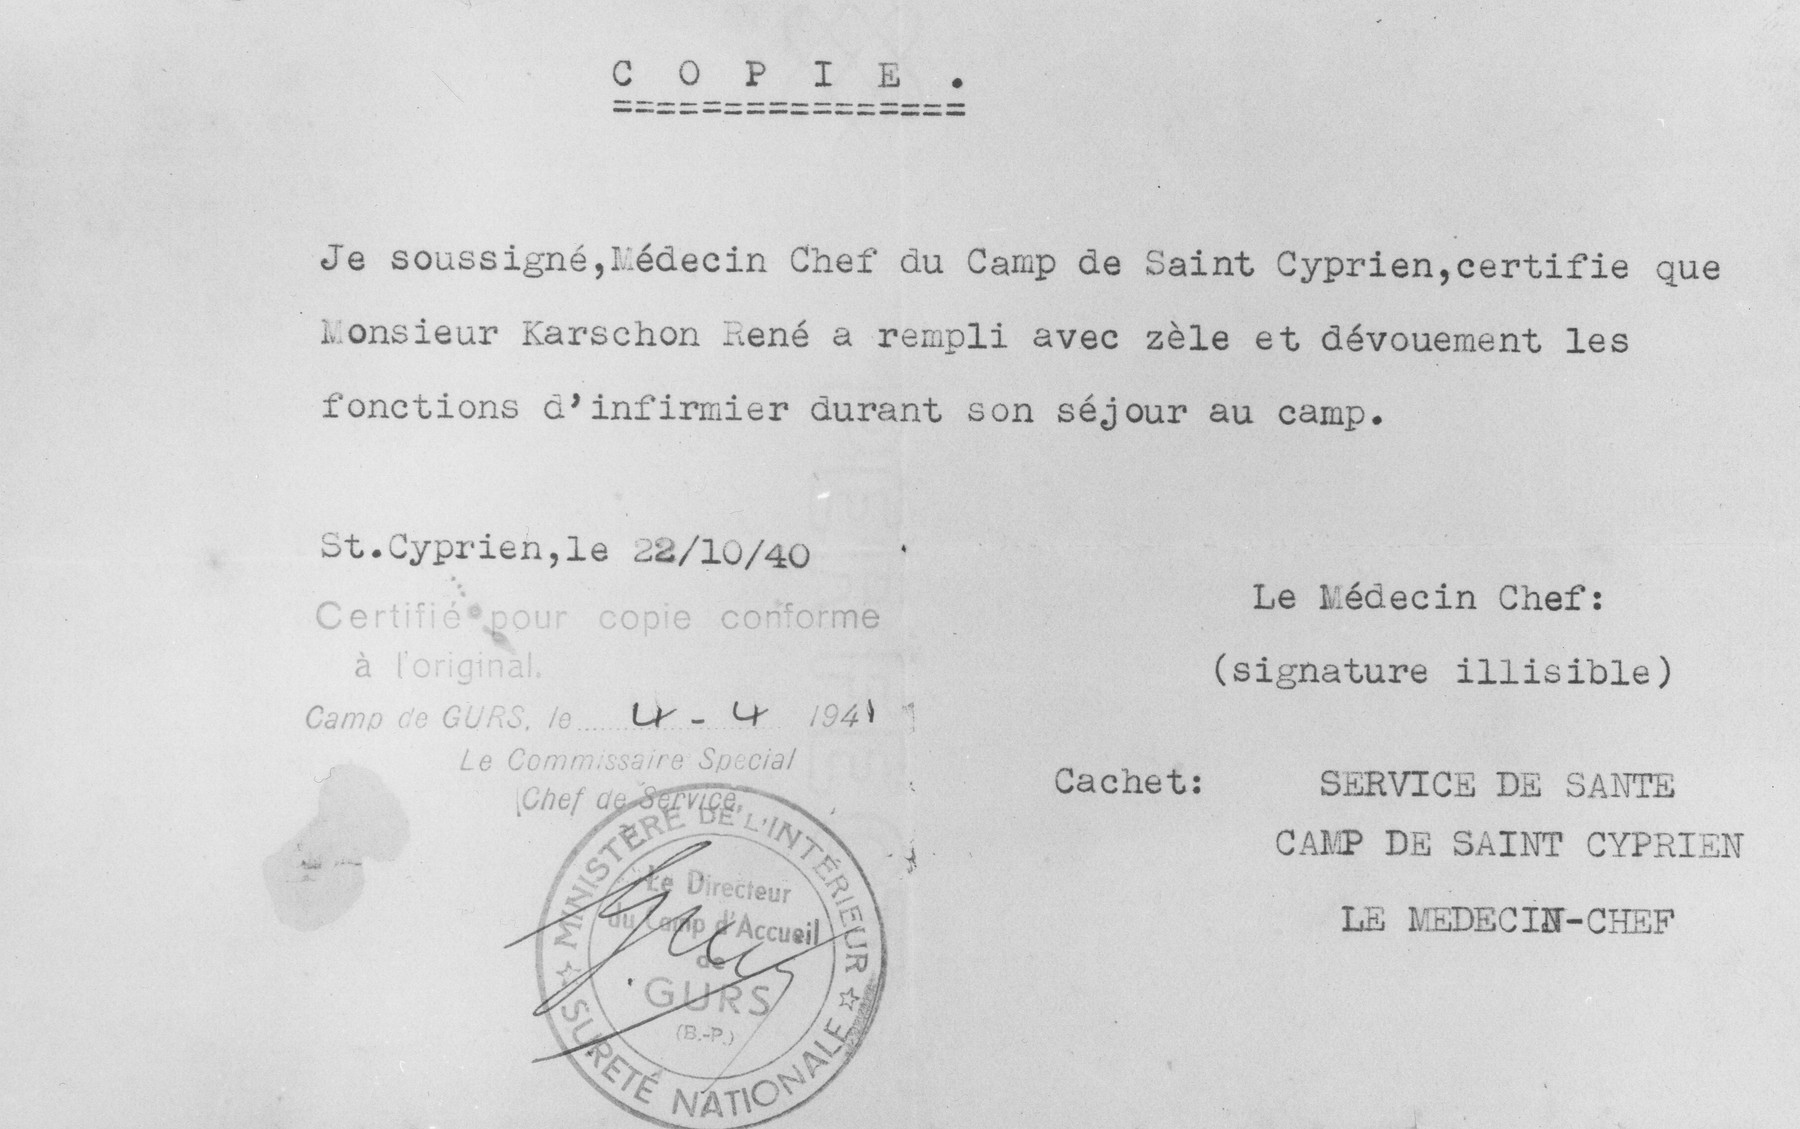 Document signed by the head physician of the Saint Cyprien internment camp and stamped by the director of the Gurs camp attesting to René Karschon's devoted service as a nurse in Saint Cyprien.  The document was issued October 22, 1940 in Saint Cyprien and stamped in Gurs on April 4, 1941.